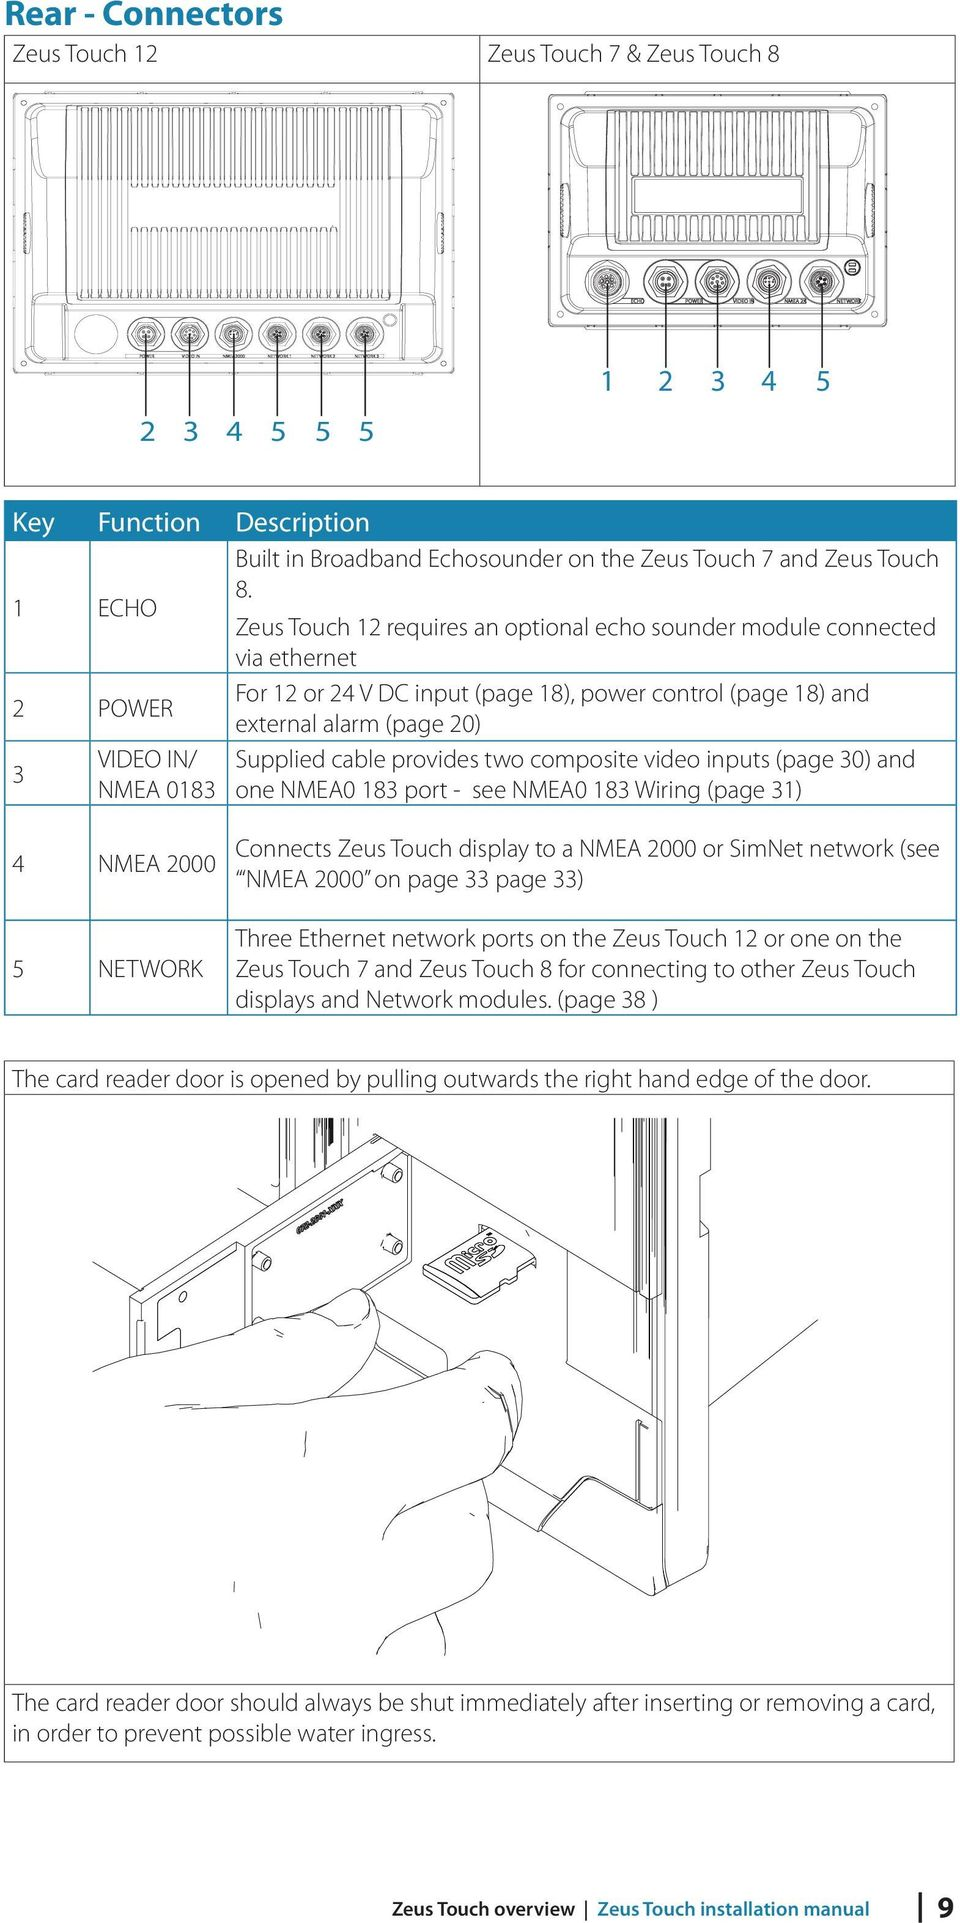 Zeus Touch Installation Guide English Pdf Nema 2000 Wiring Diagram Cable Provides Two Composite Video Inputs Page 30 And Nmea 0183 One Nmea0 183